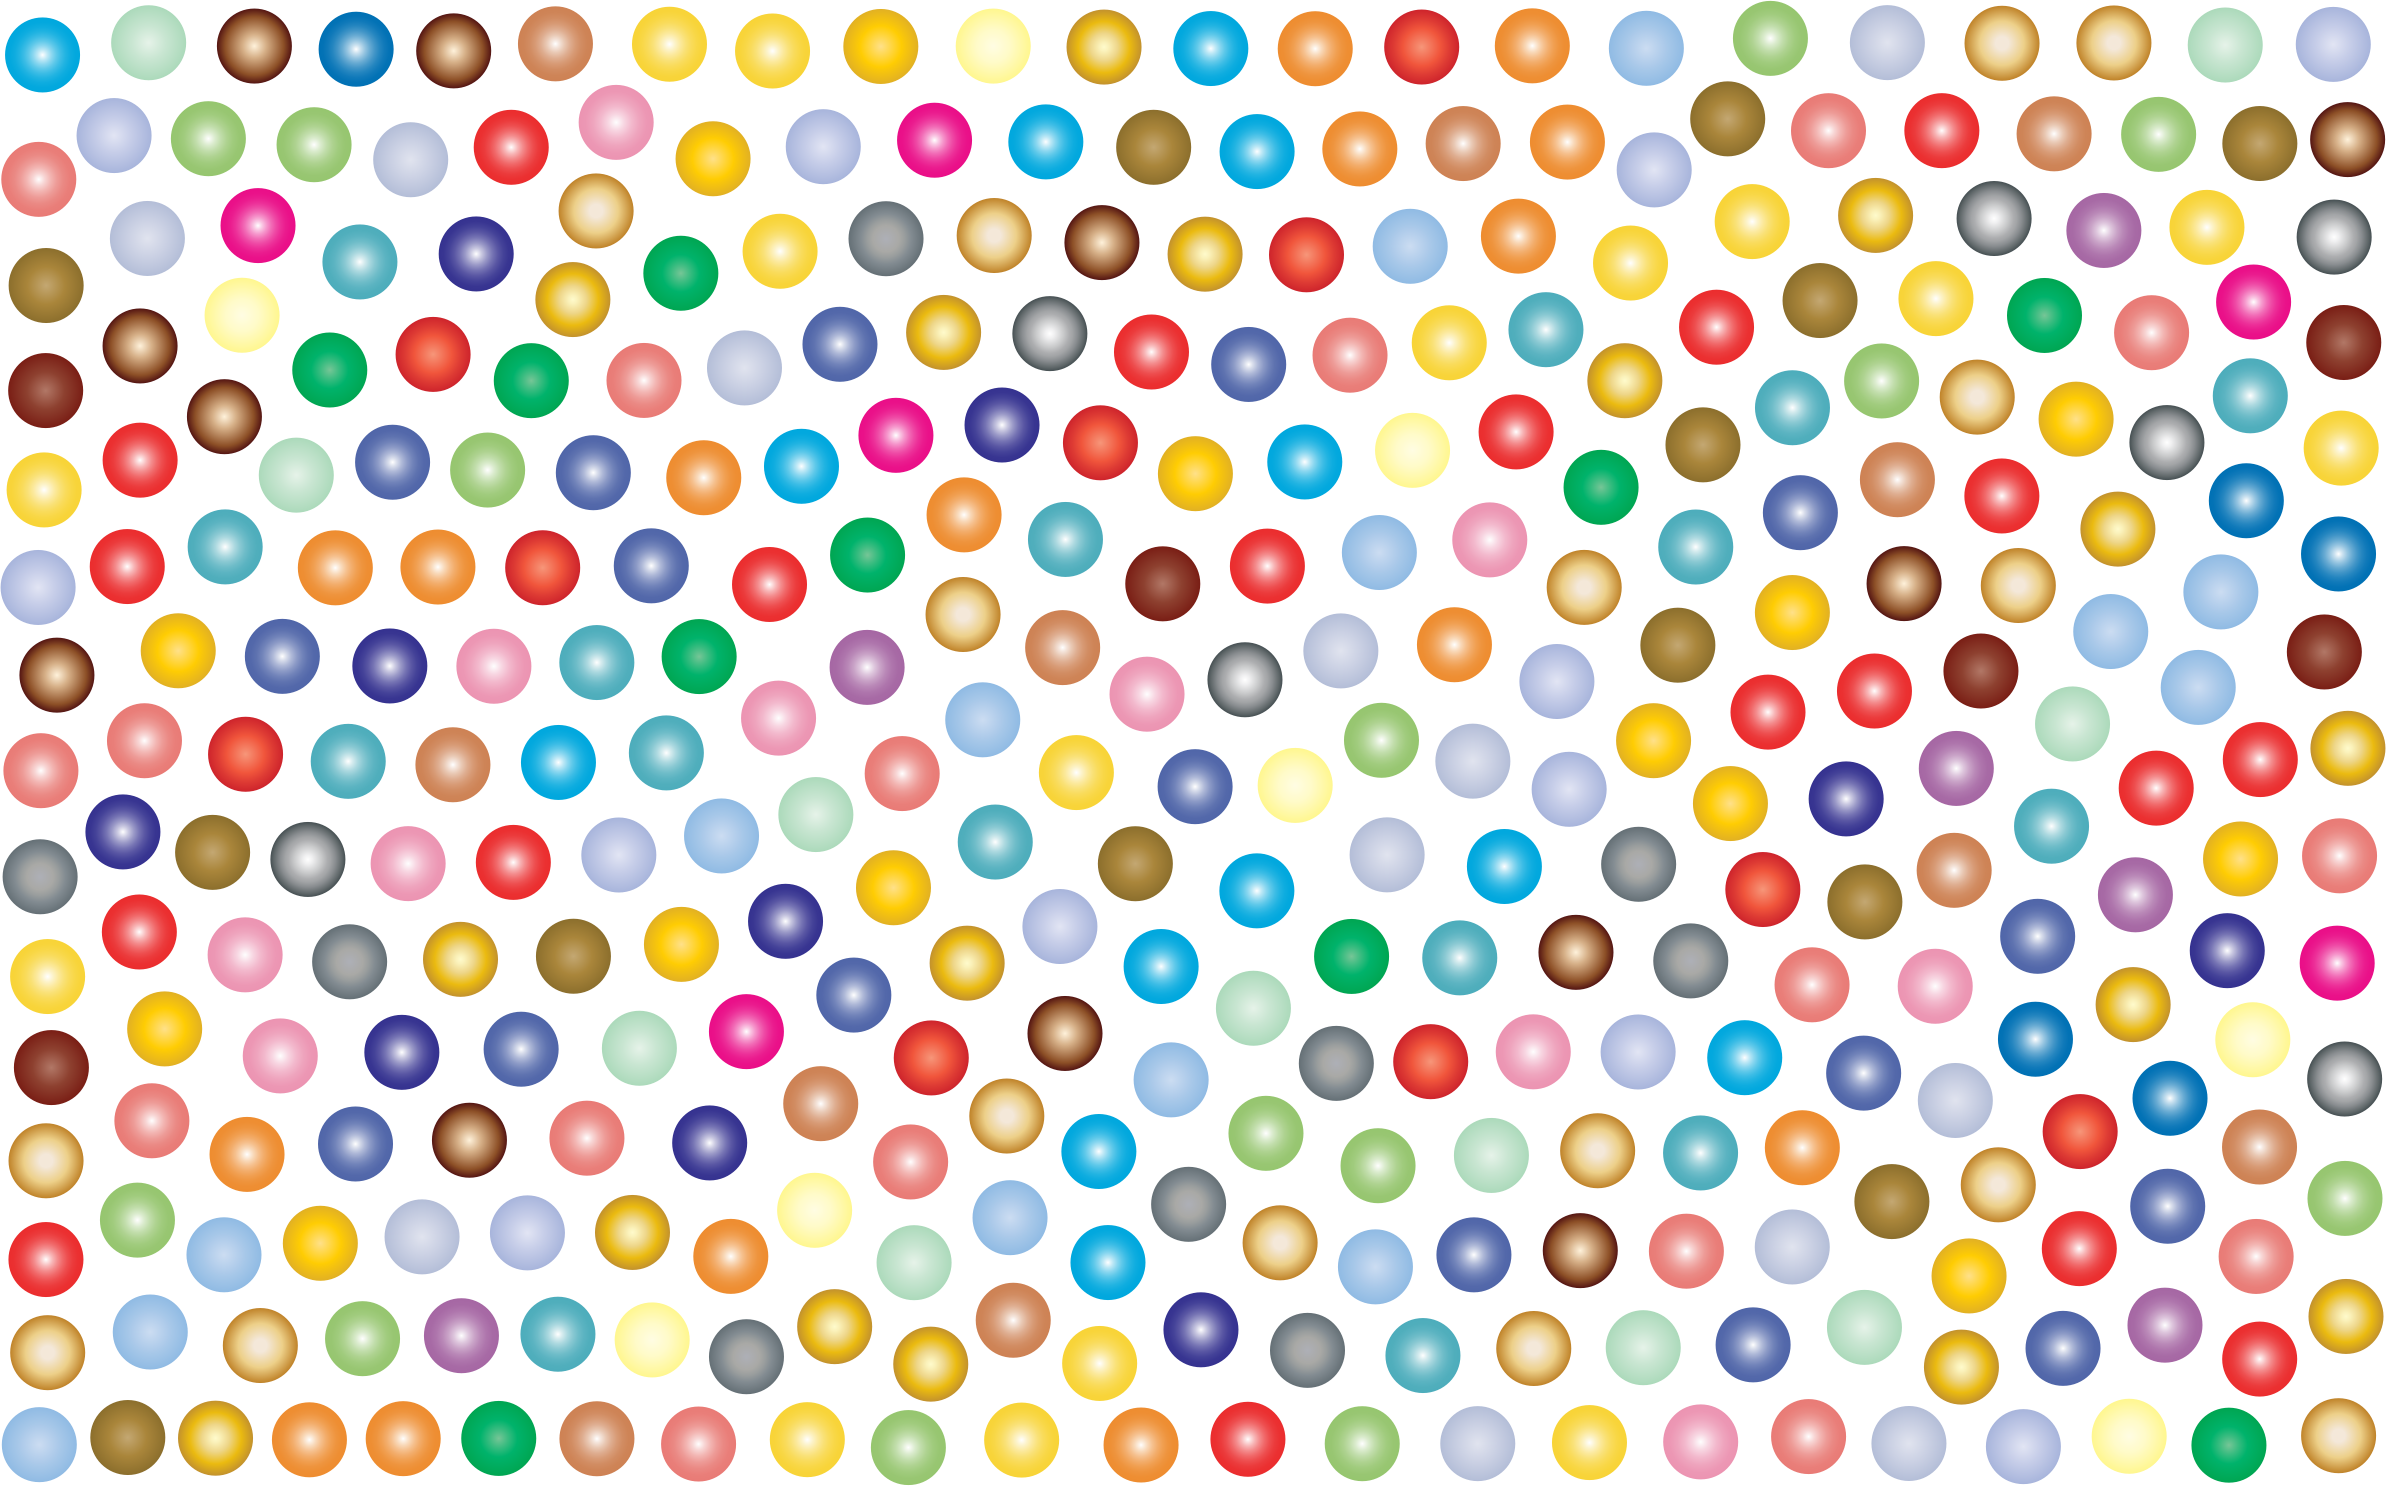 Prismatic Dots Background 2 No Background by GDJ